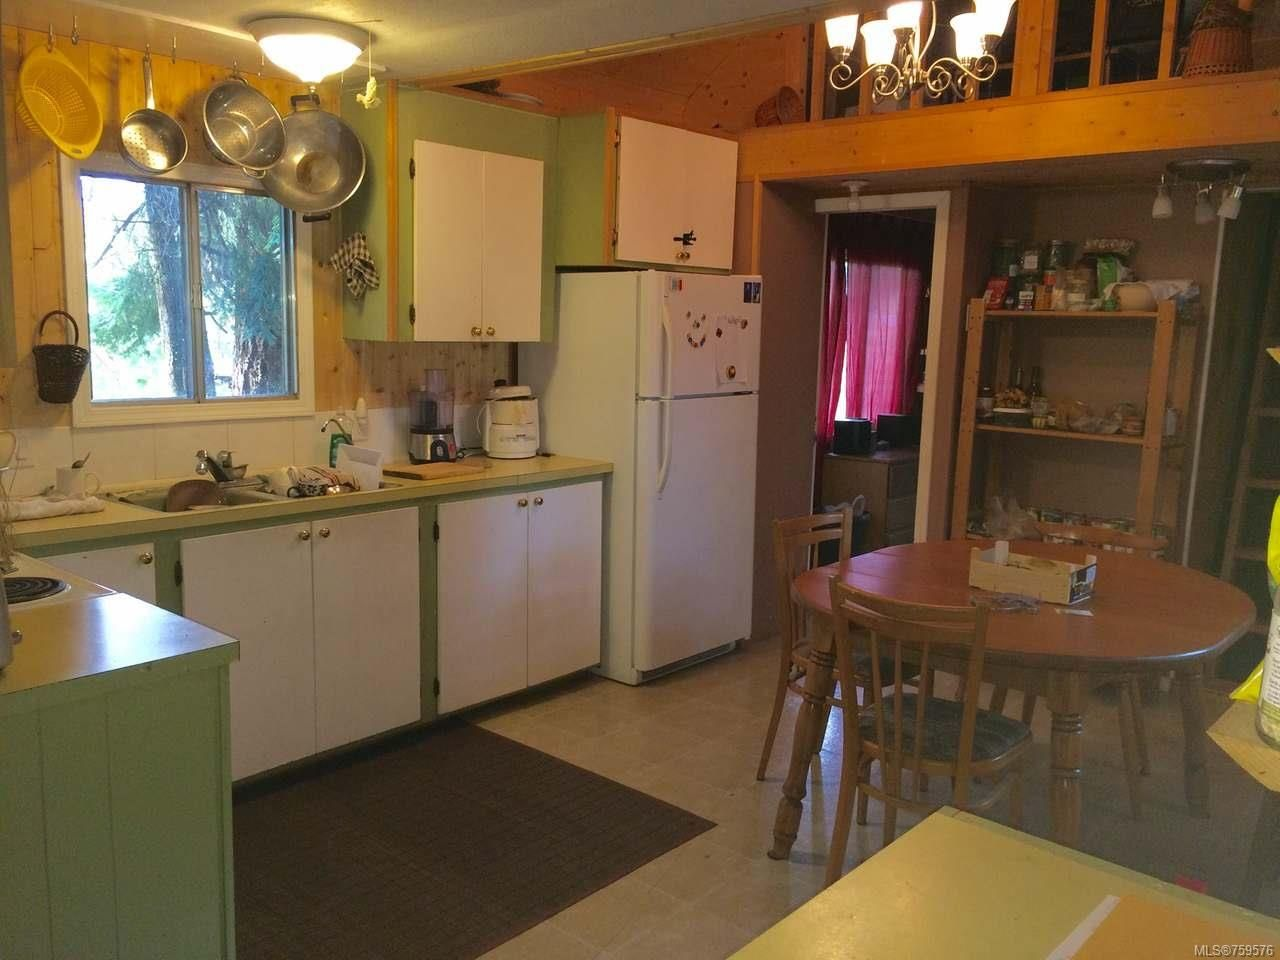 Photo 4: Photos: 3537 HARRIS Crescent in HILLIERS: PQ Errington/Coombs/Hilliers Manufactured Home for sale (Parksville/Qualicum)  : MLS®# 759576